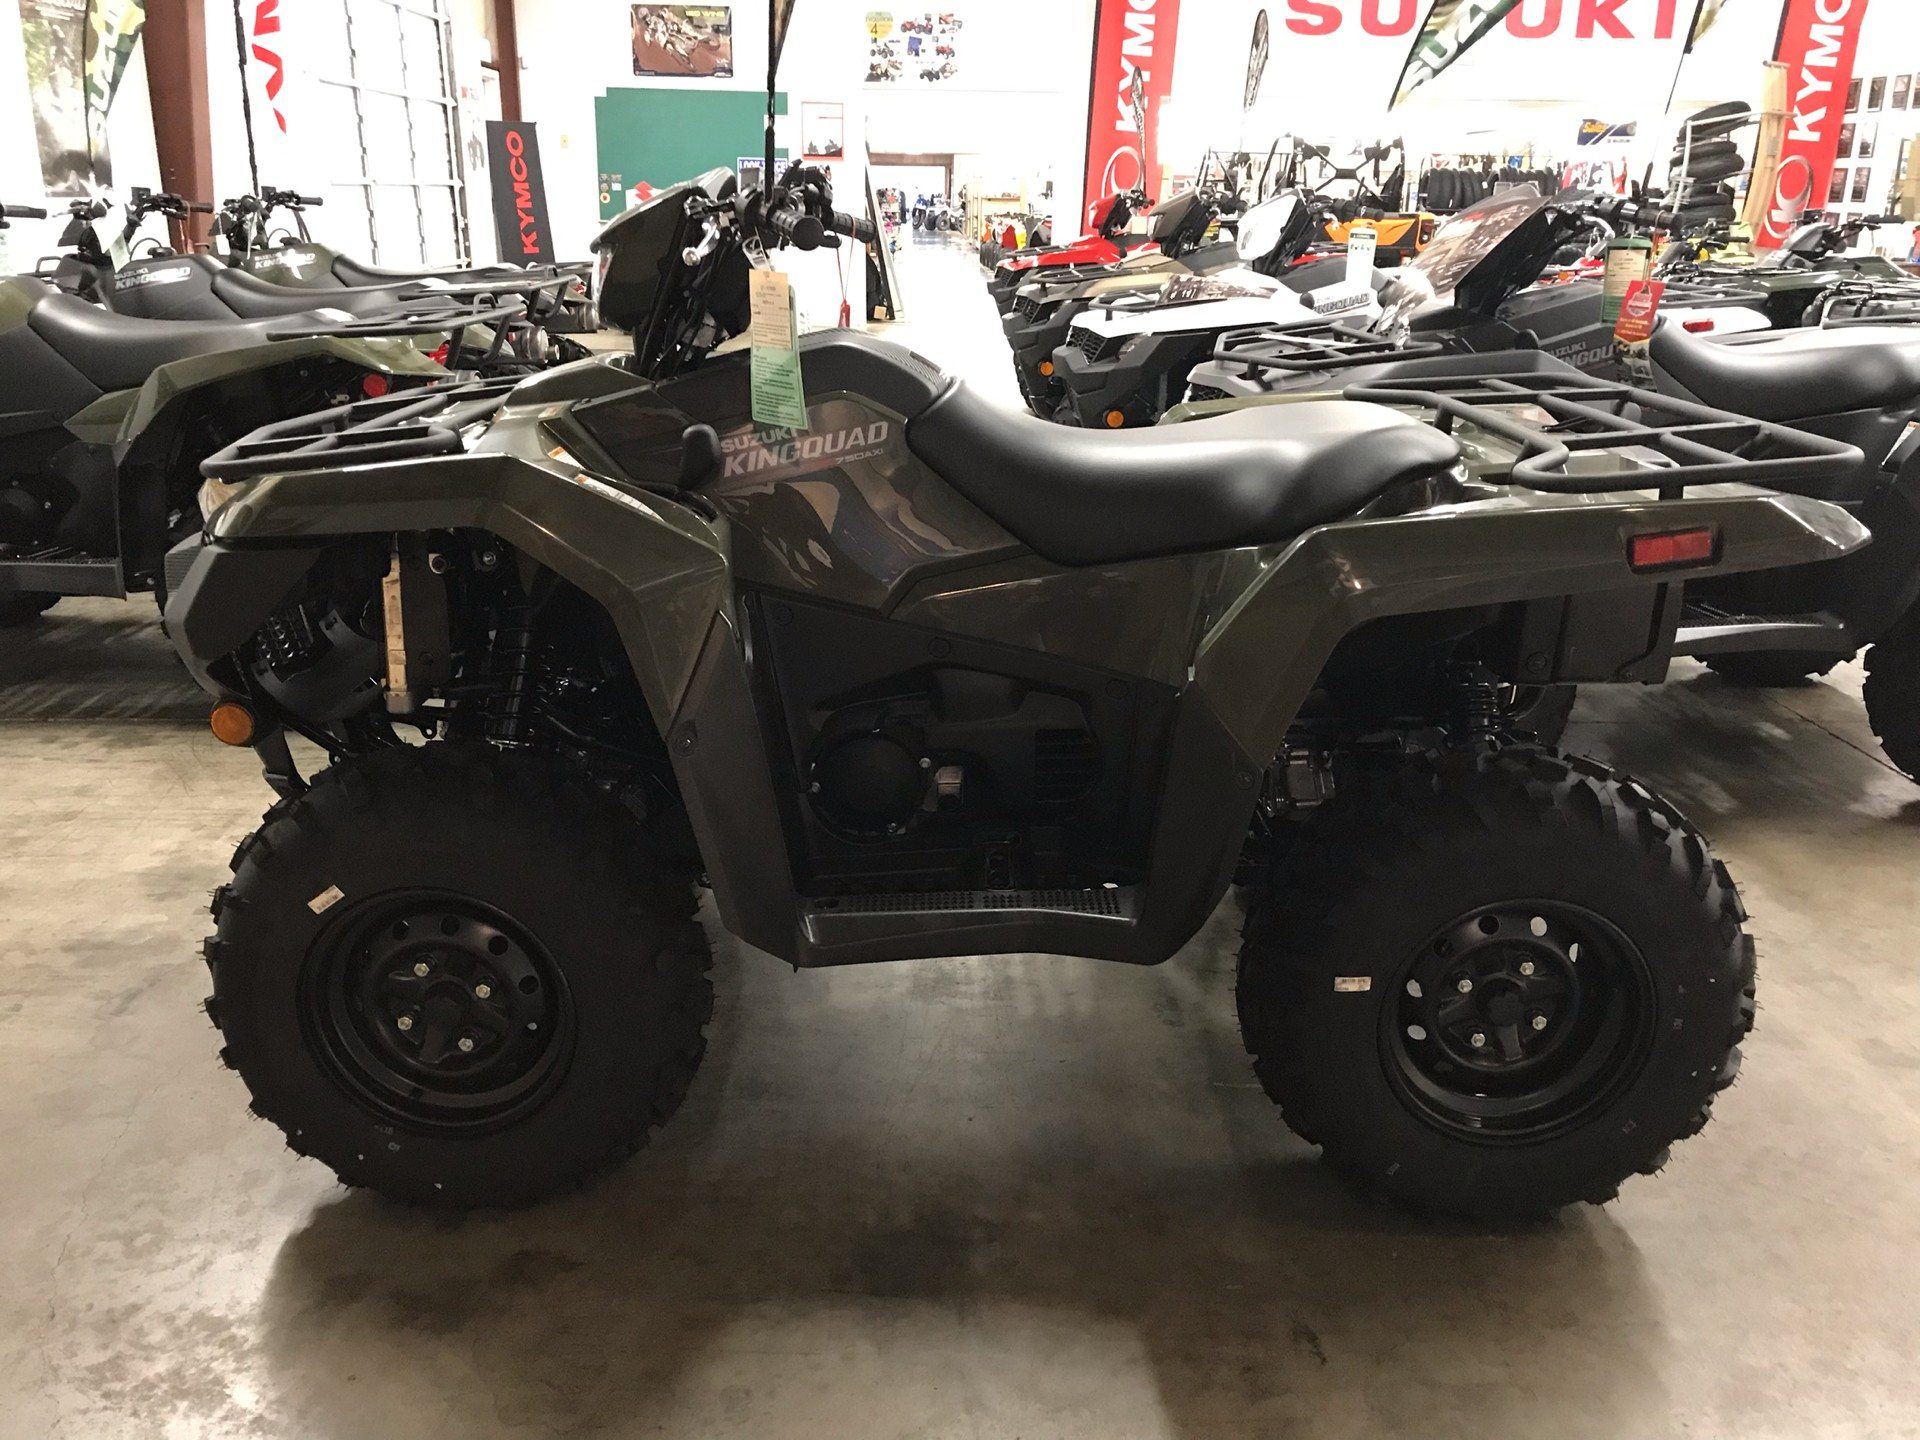 2019 Suzuki KingQuad 750AXi in Sanford, North Carolina - Photo 1